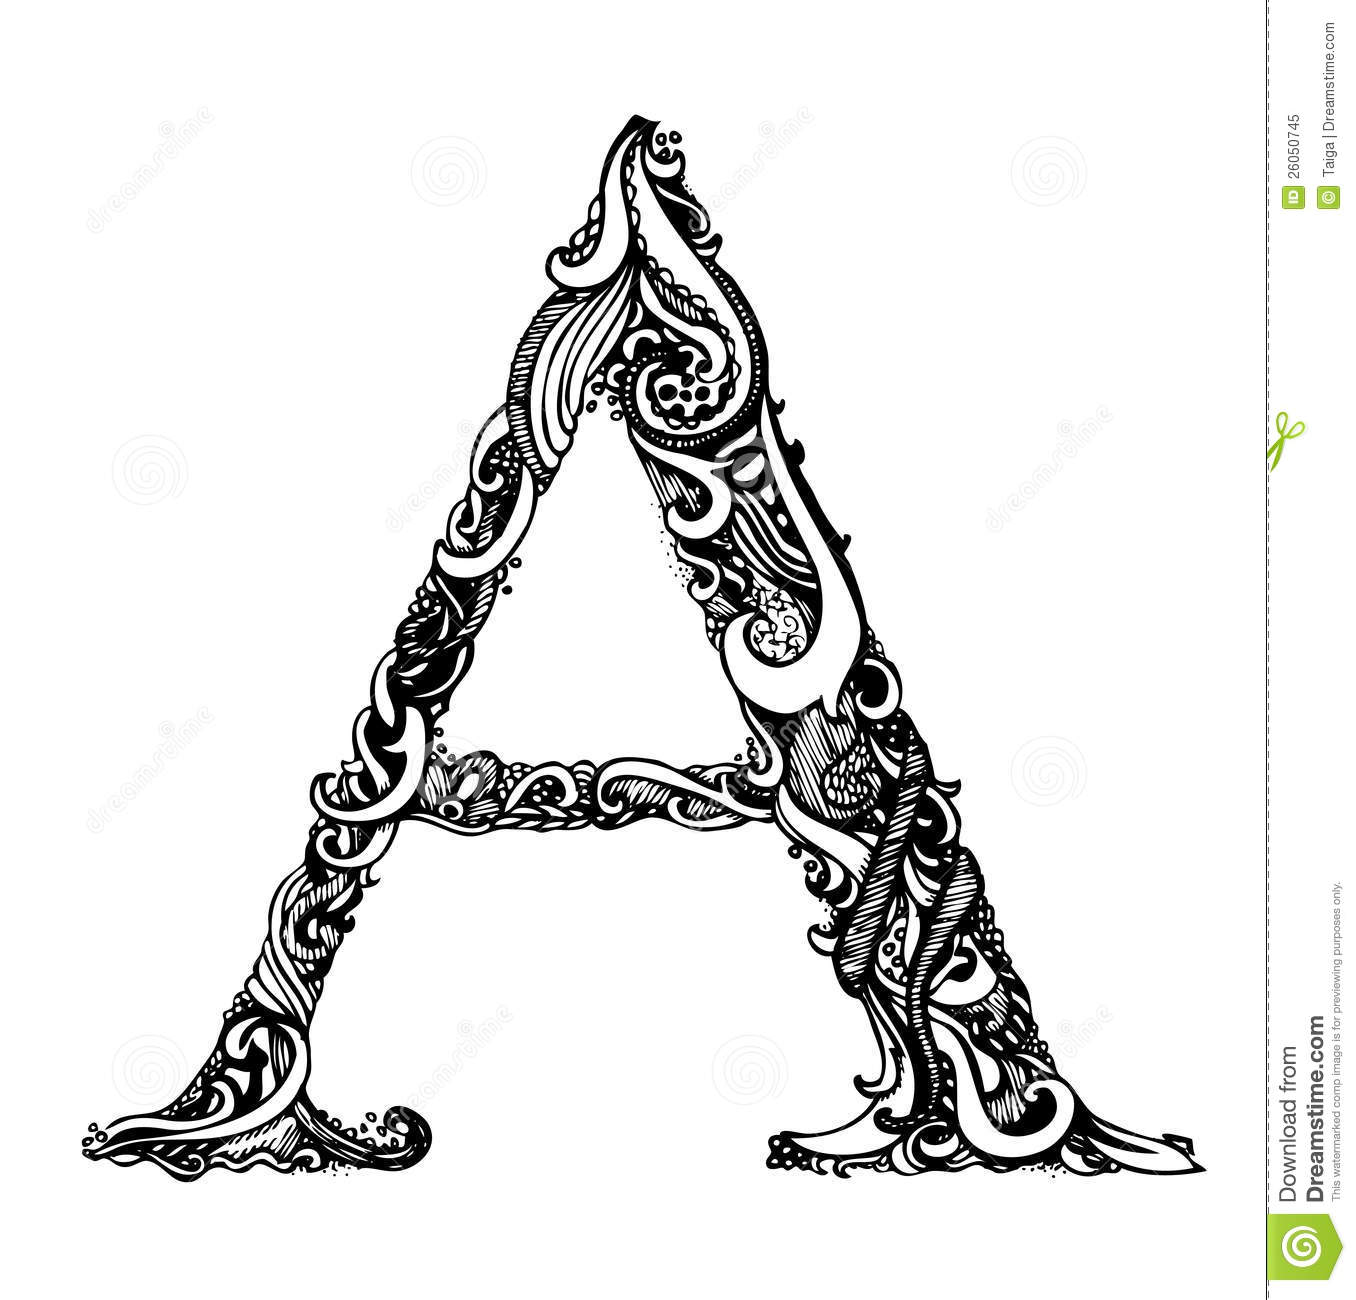 Capital Letter A - Calligraphic Vintage Swirly Royalty Free Stock ...